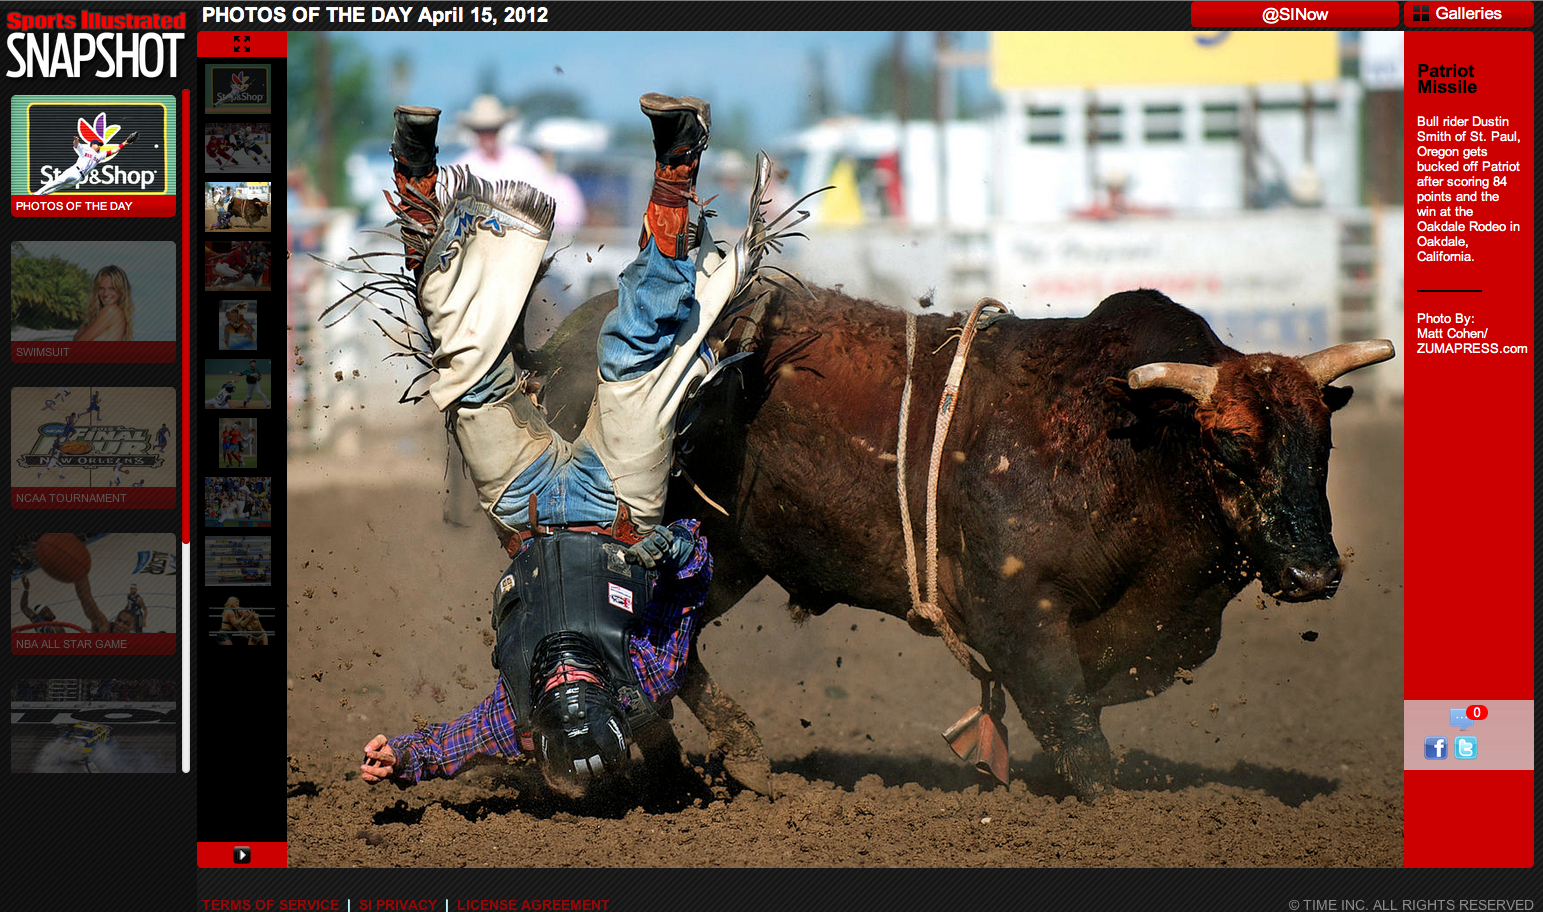 Dustin Smith Sports Illustrated Photos of the Day April 15, 2012